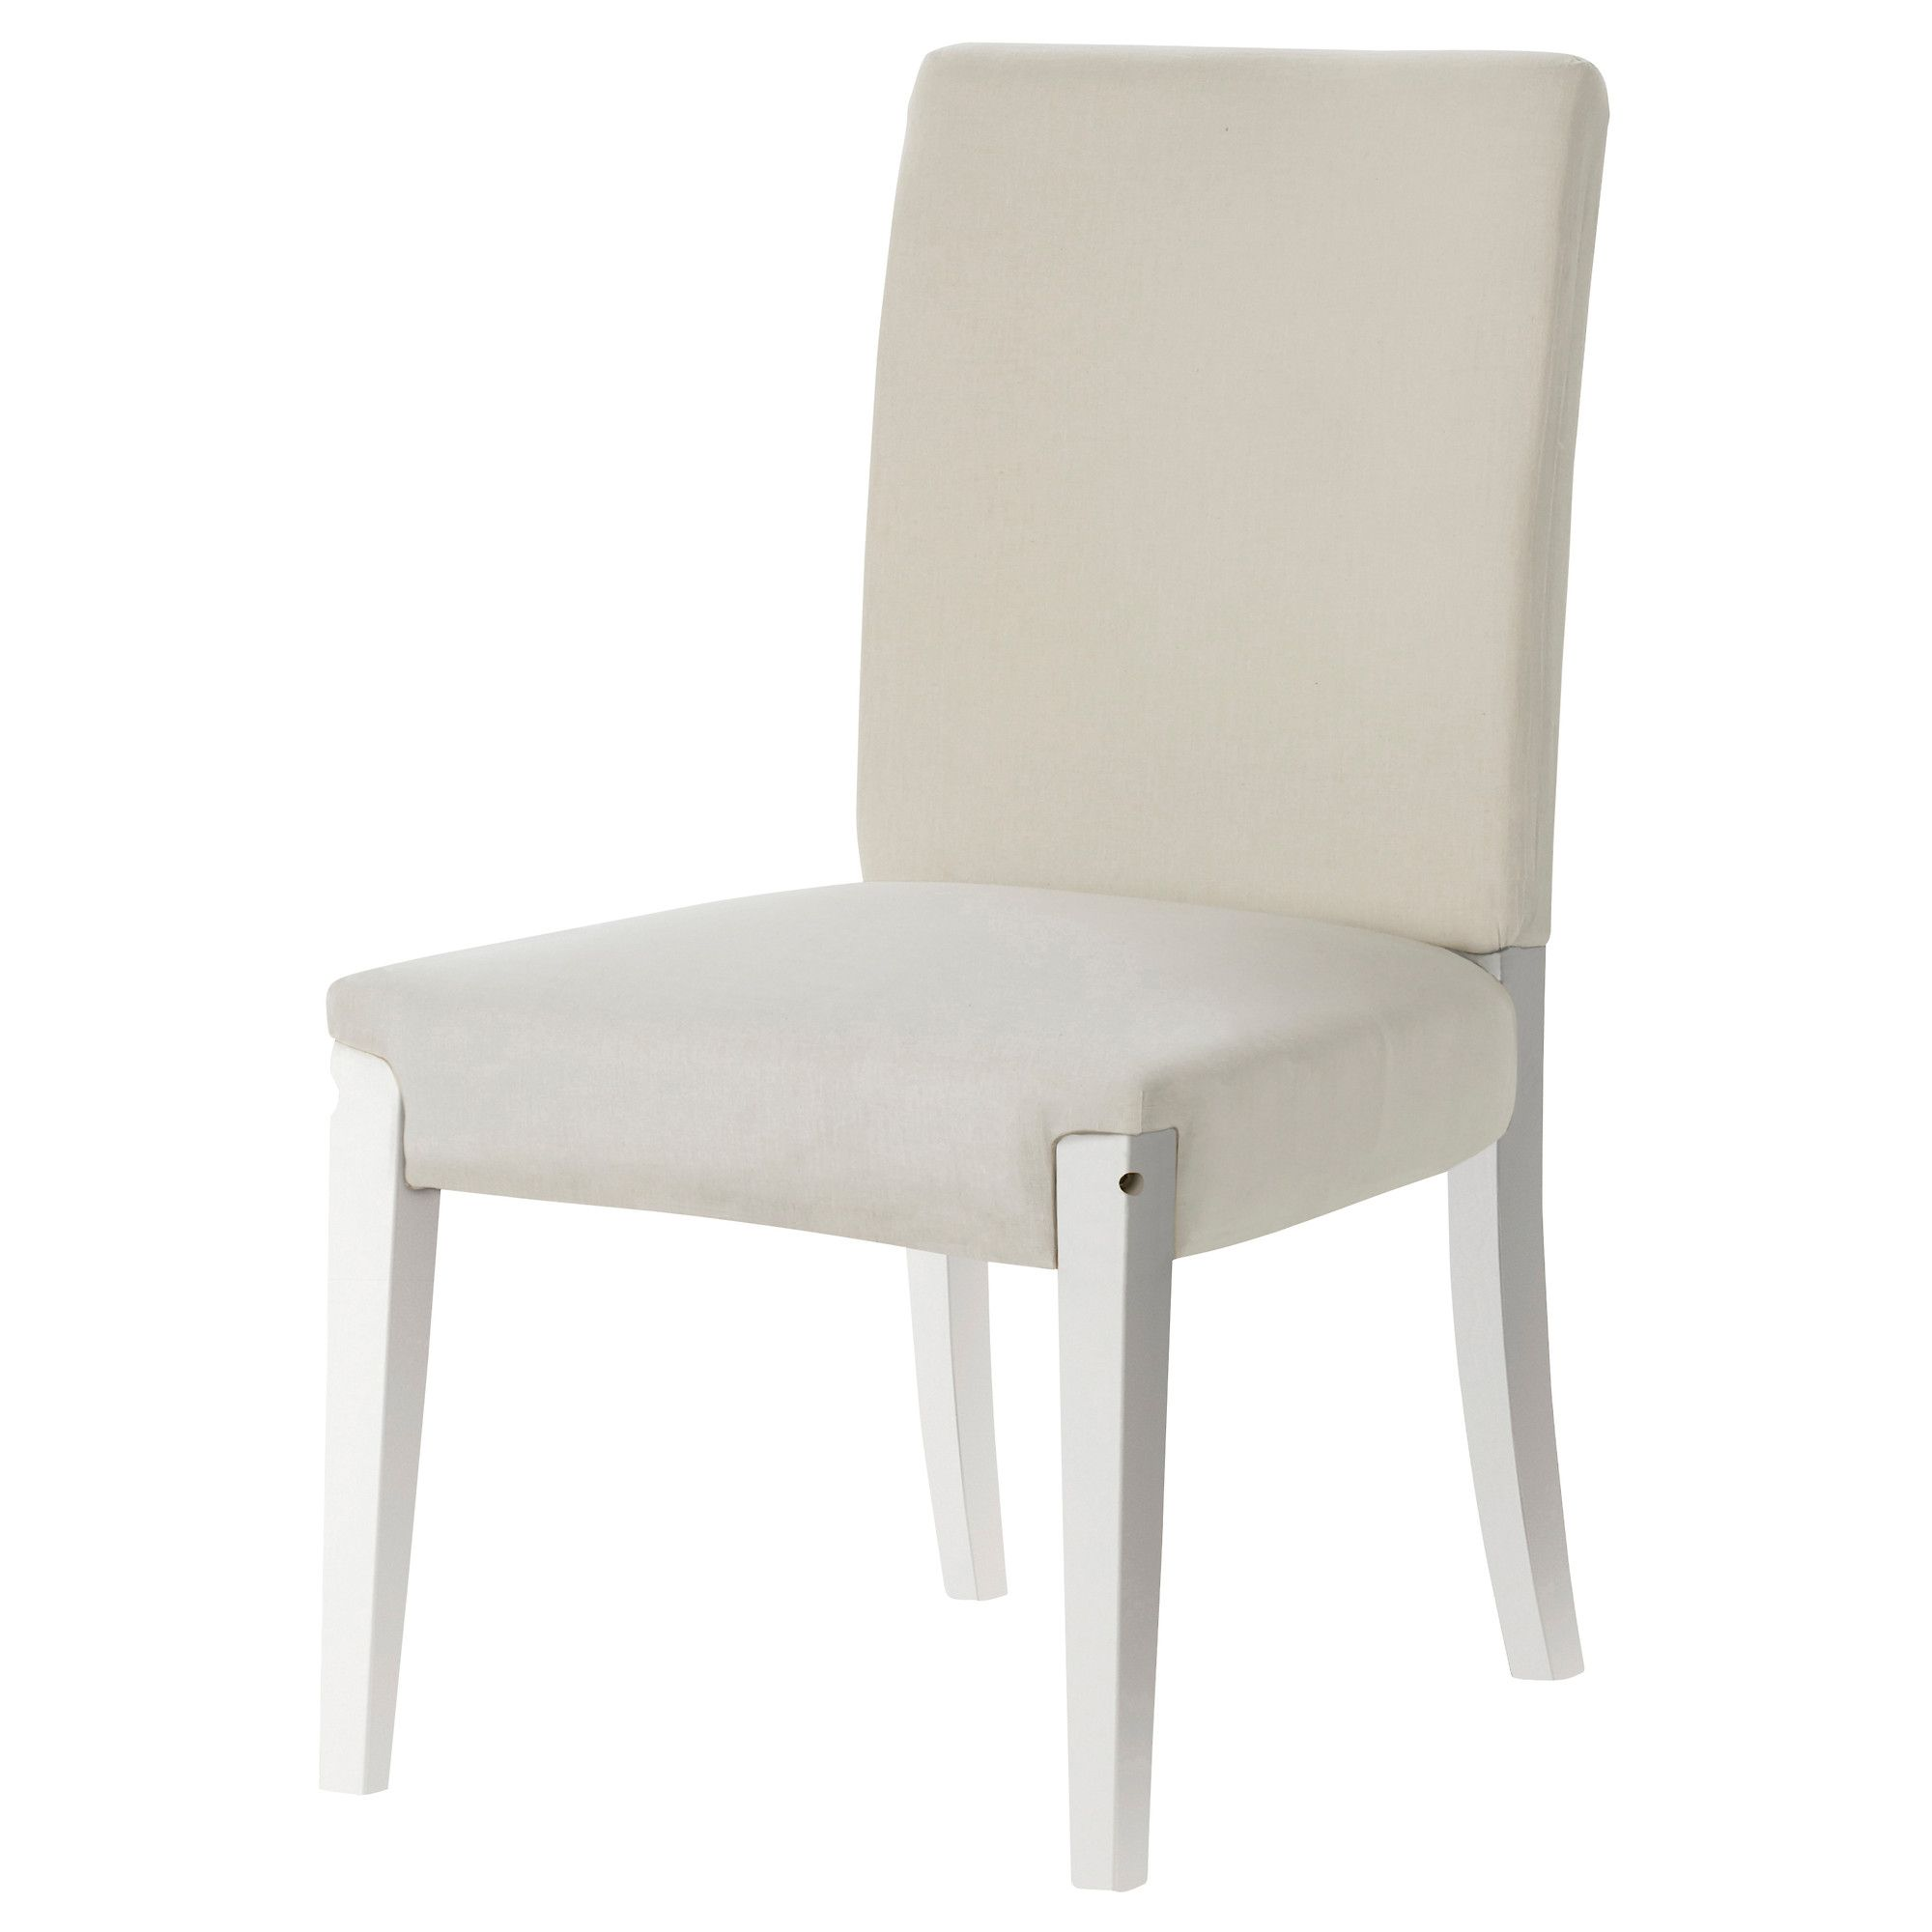 Ikea Henriksdal Chair Frame White Products